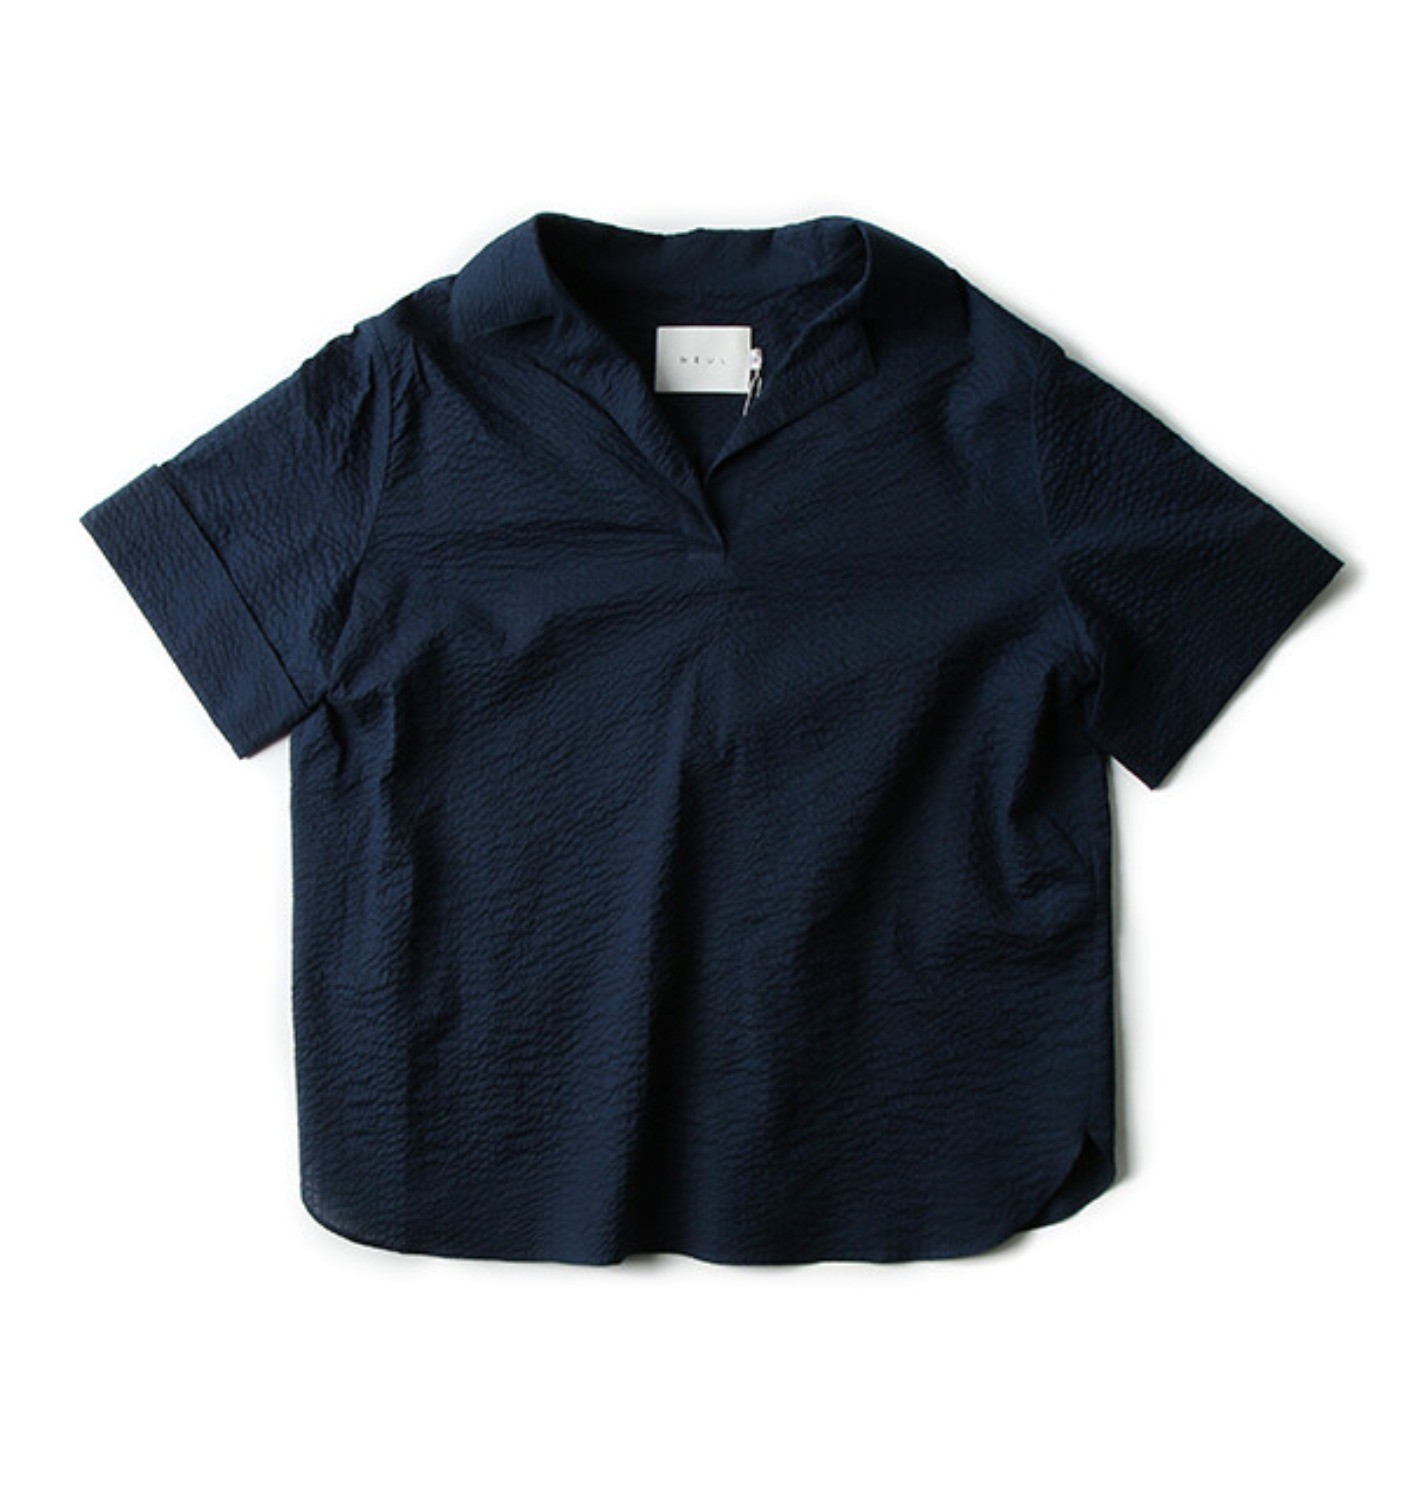 SEER POLO SHIRT NAVY (NSH05004A)